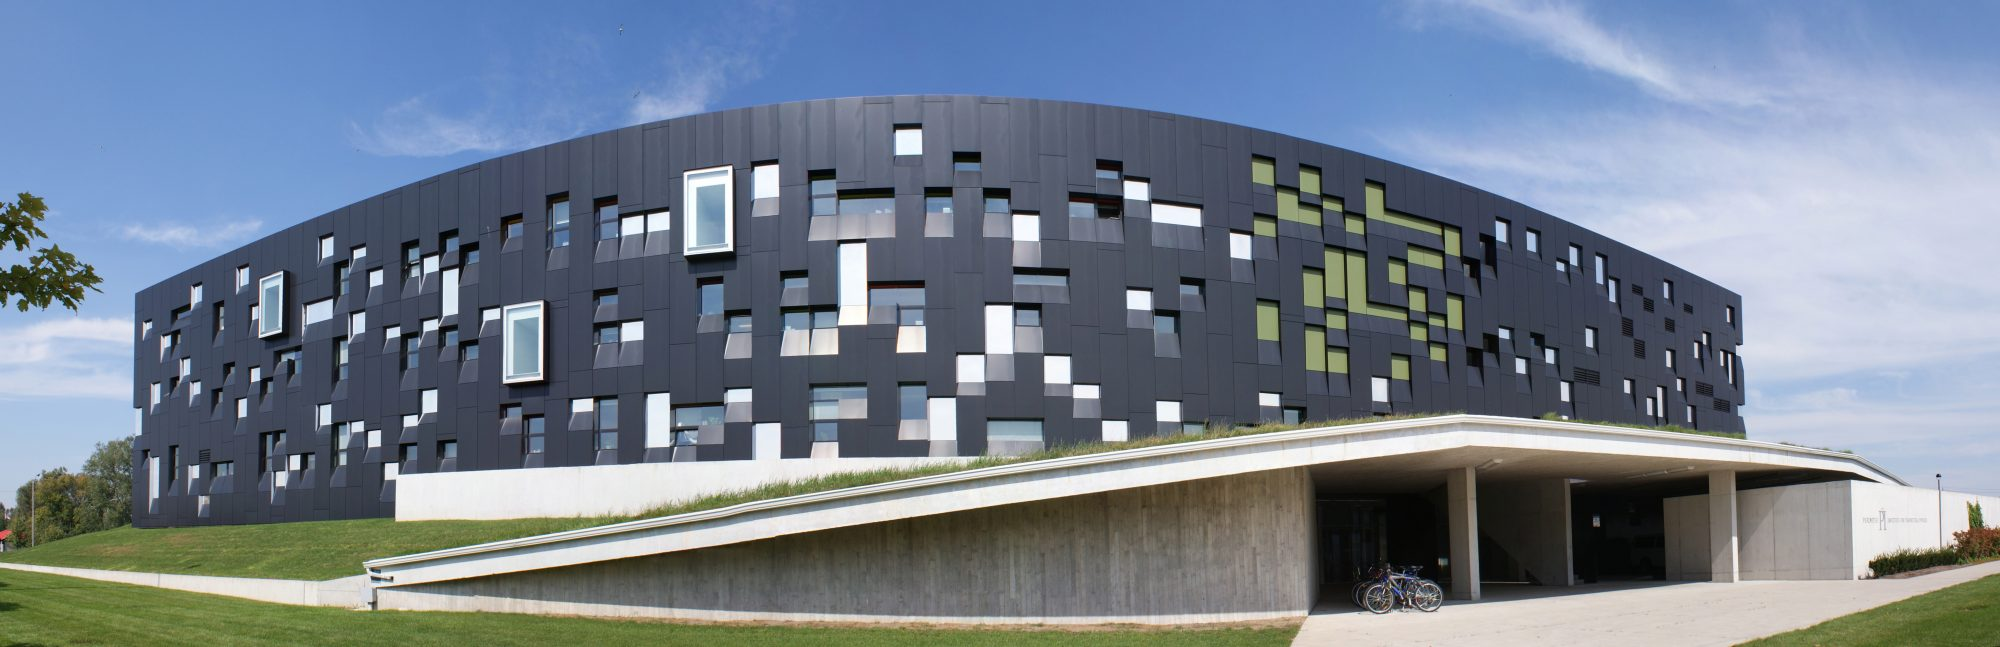 Perimeter_Institute_Pano_edit2